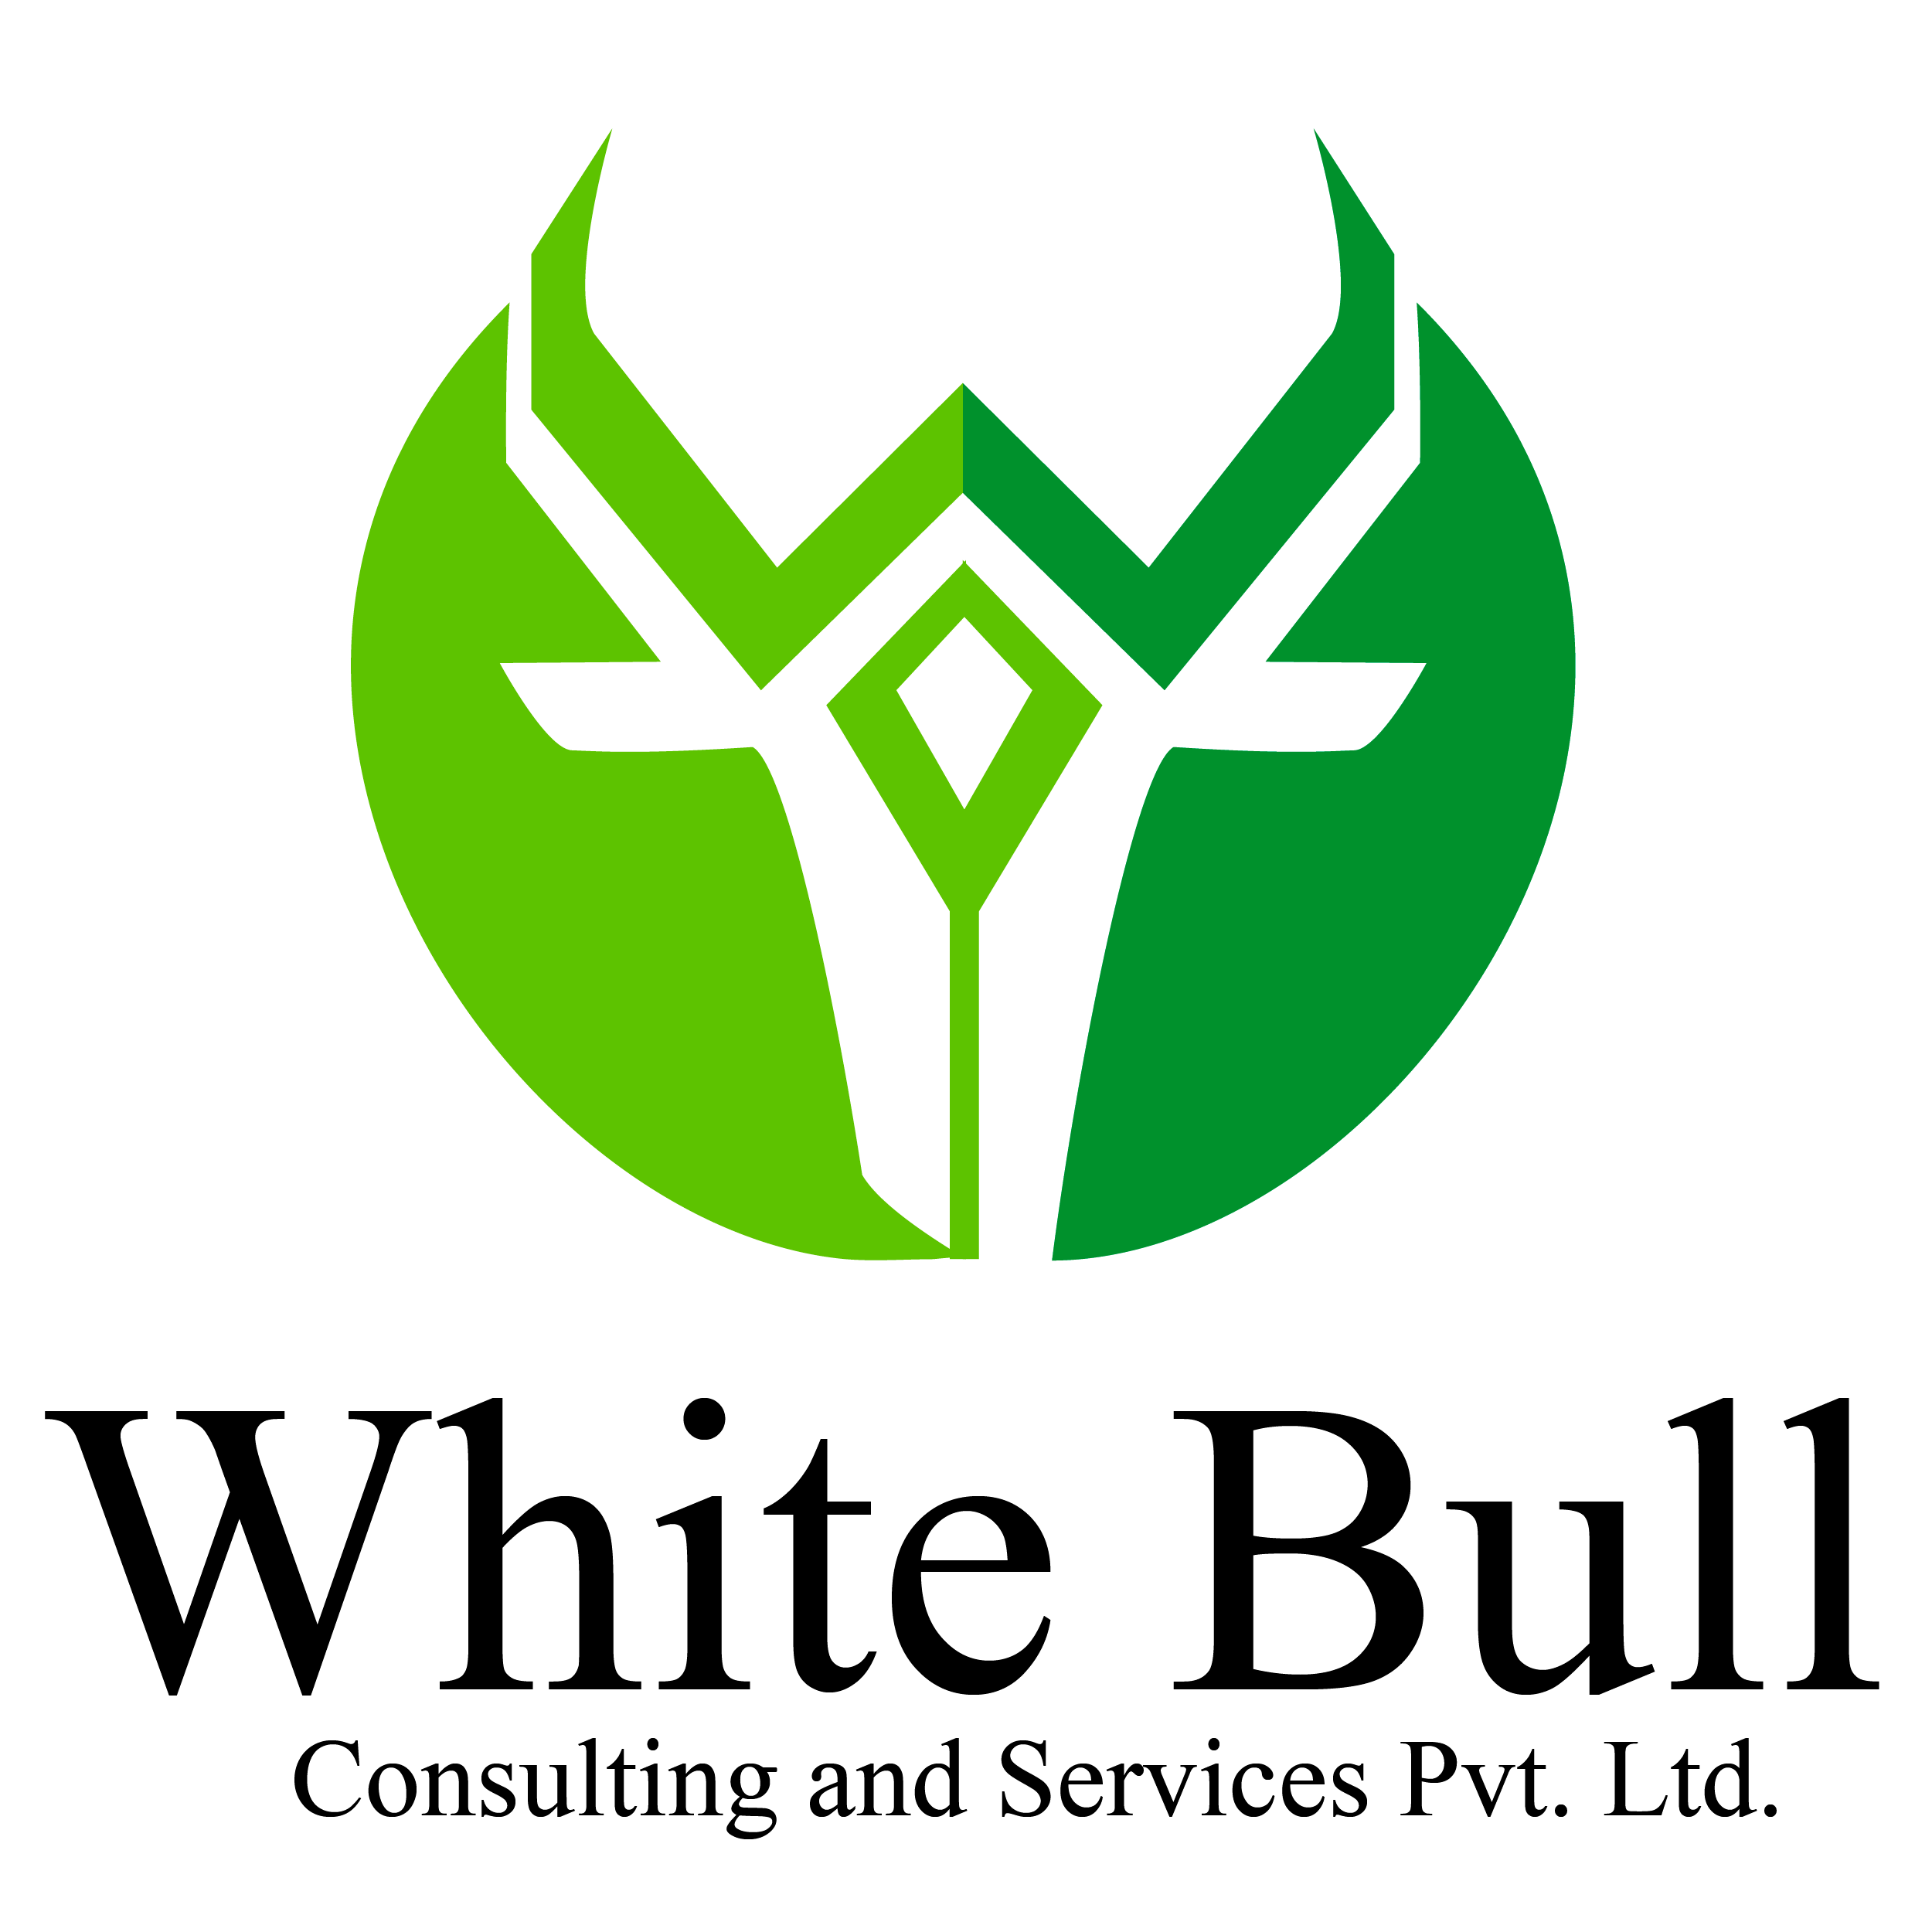 White Bull Consulting & Services Pvt. Ltd